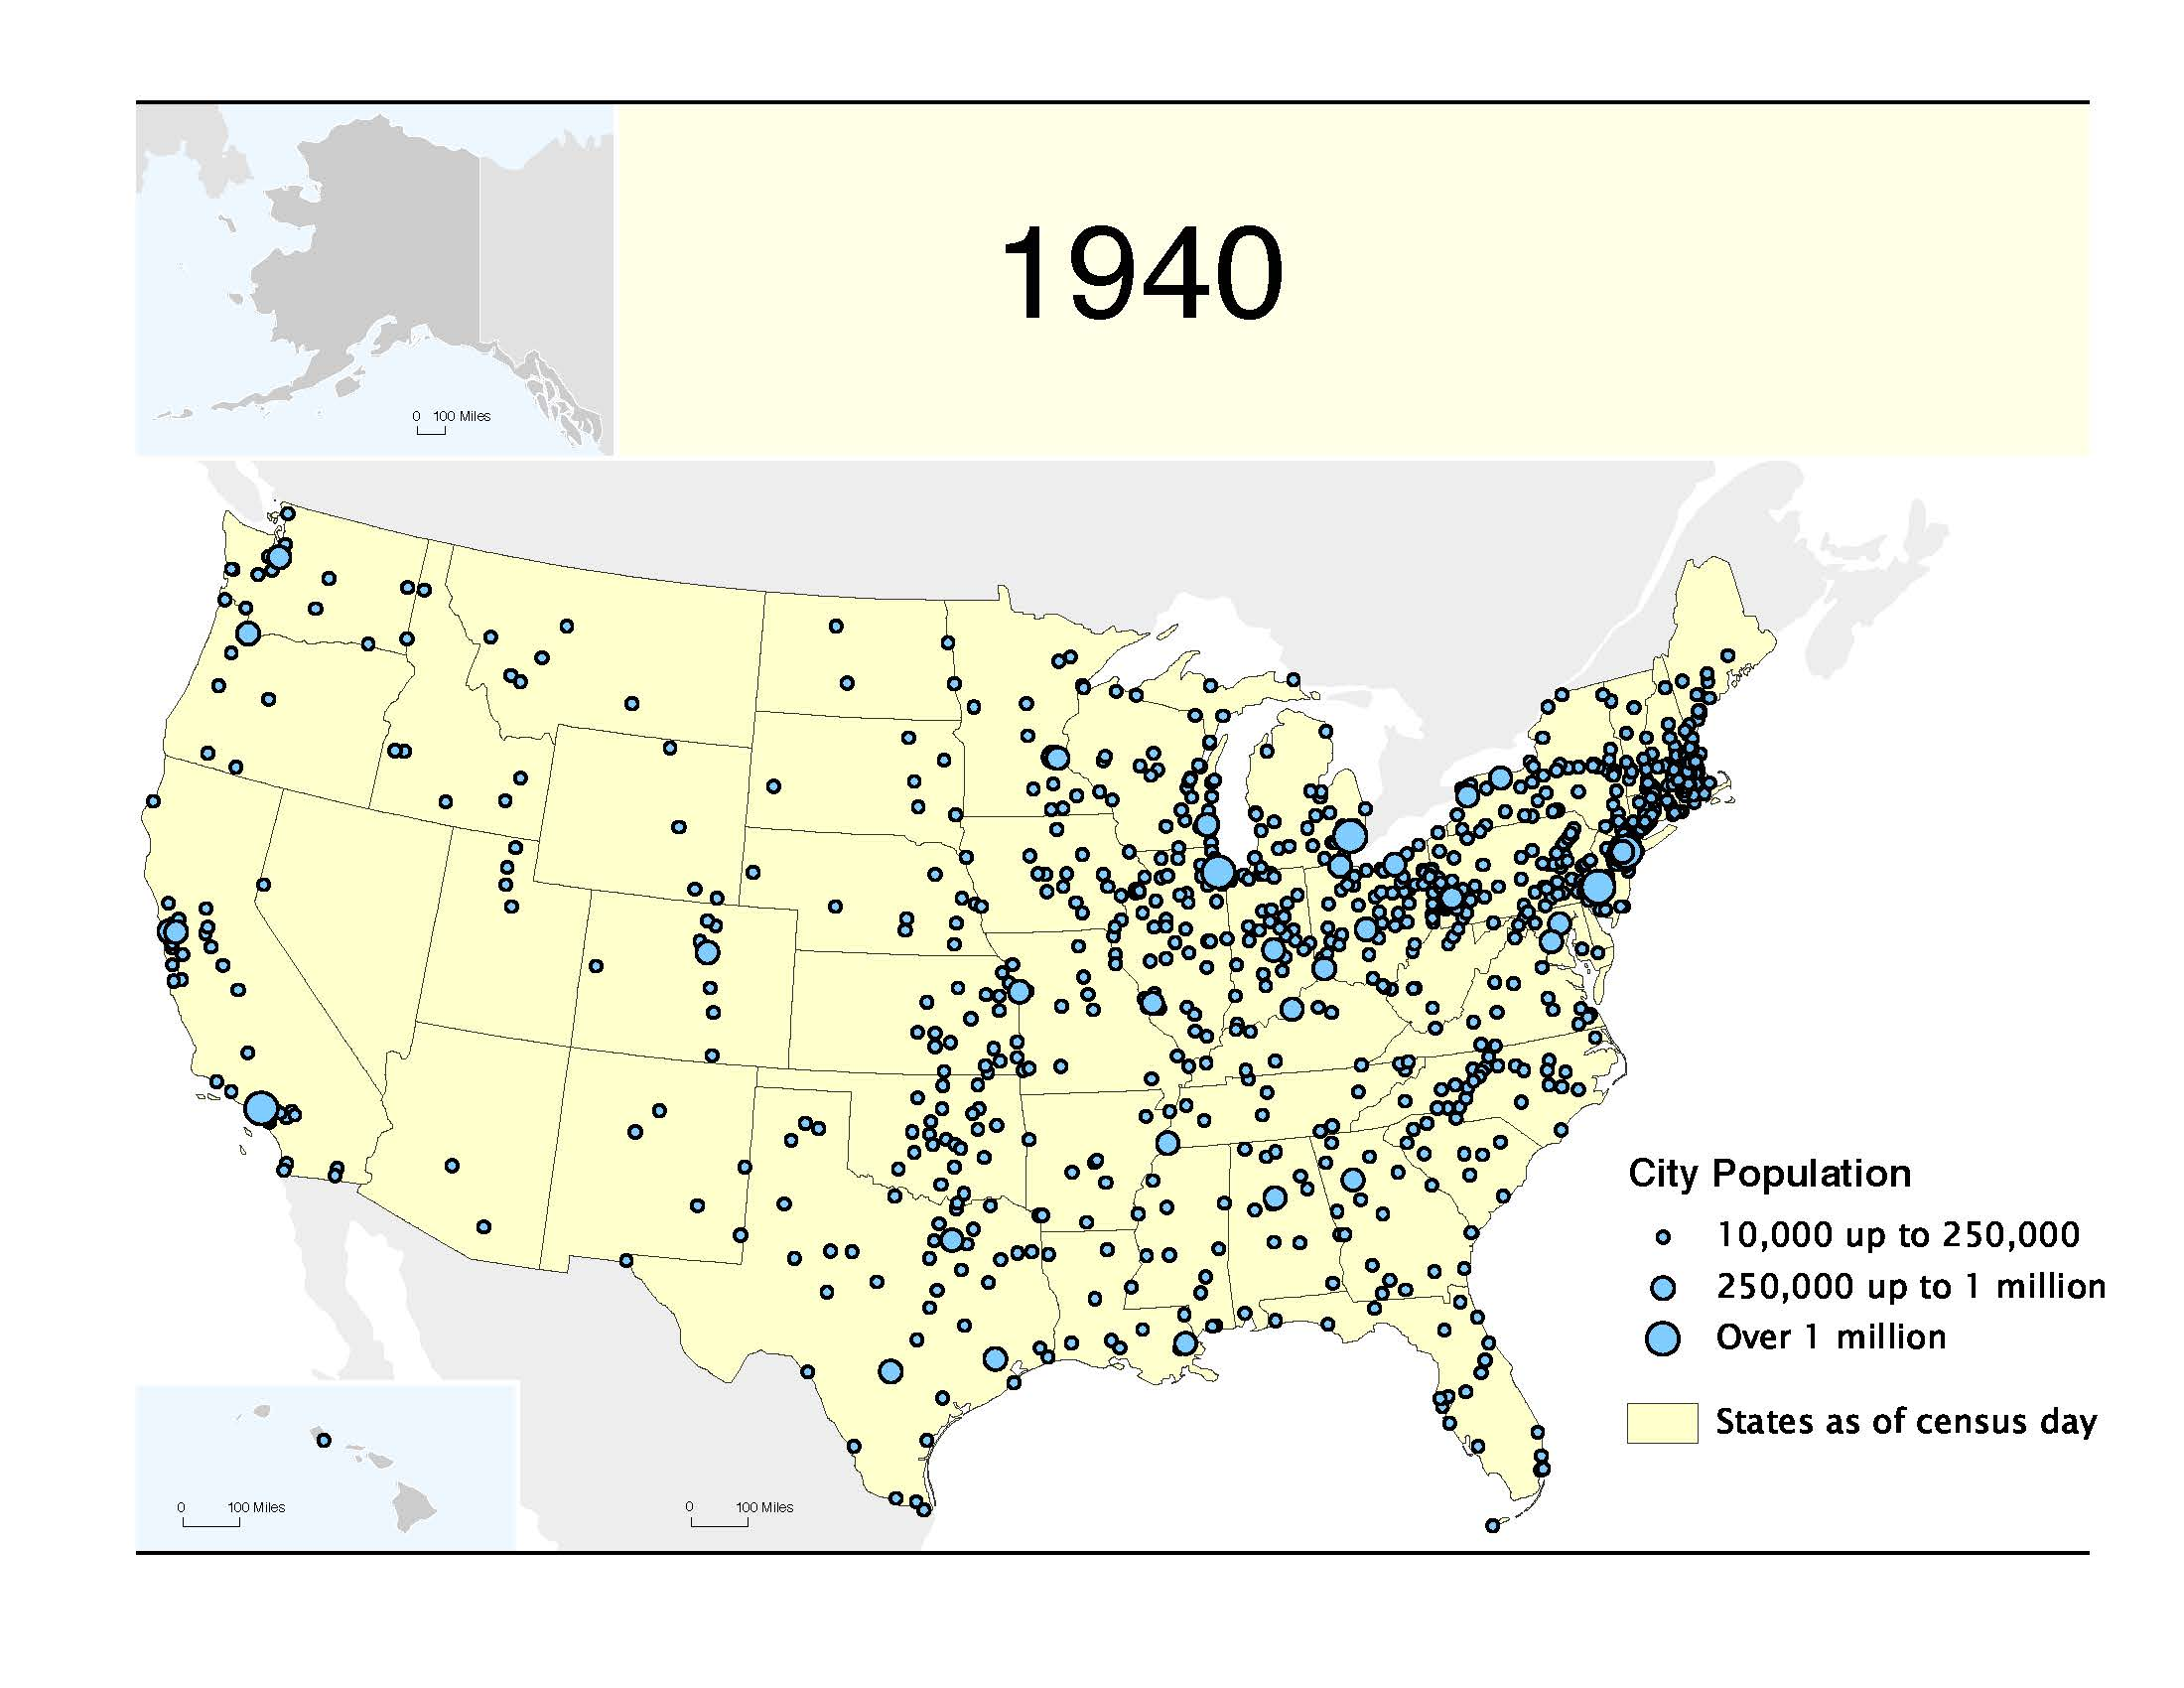 map city population 1940